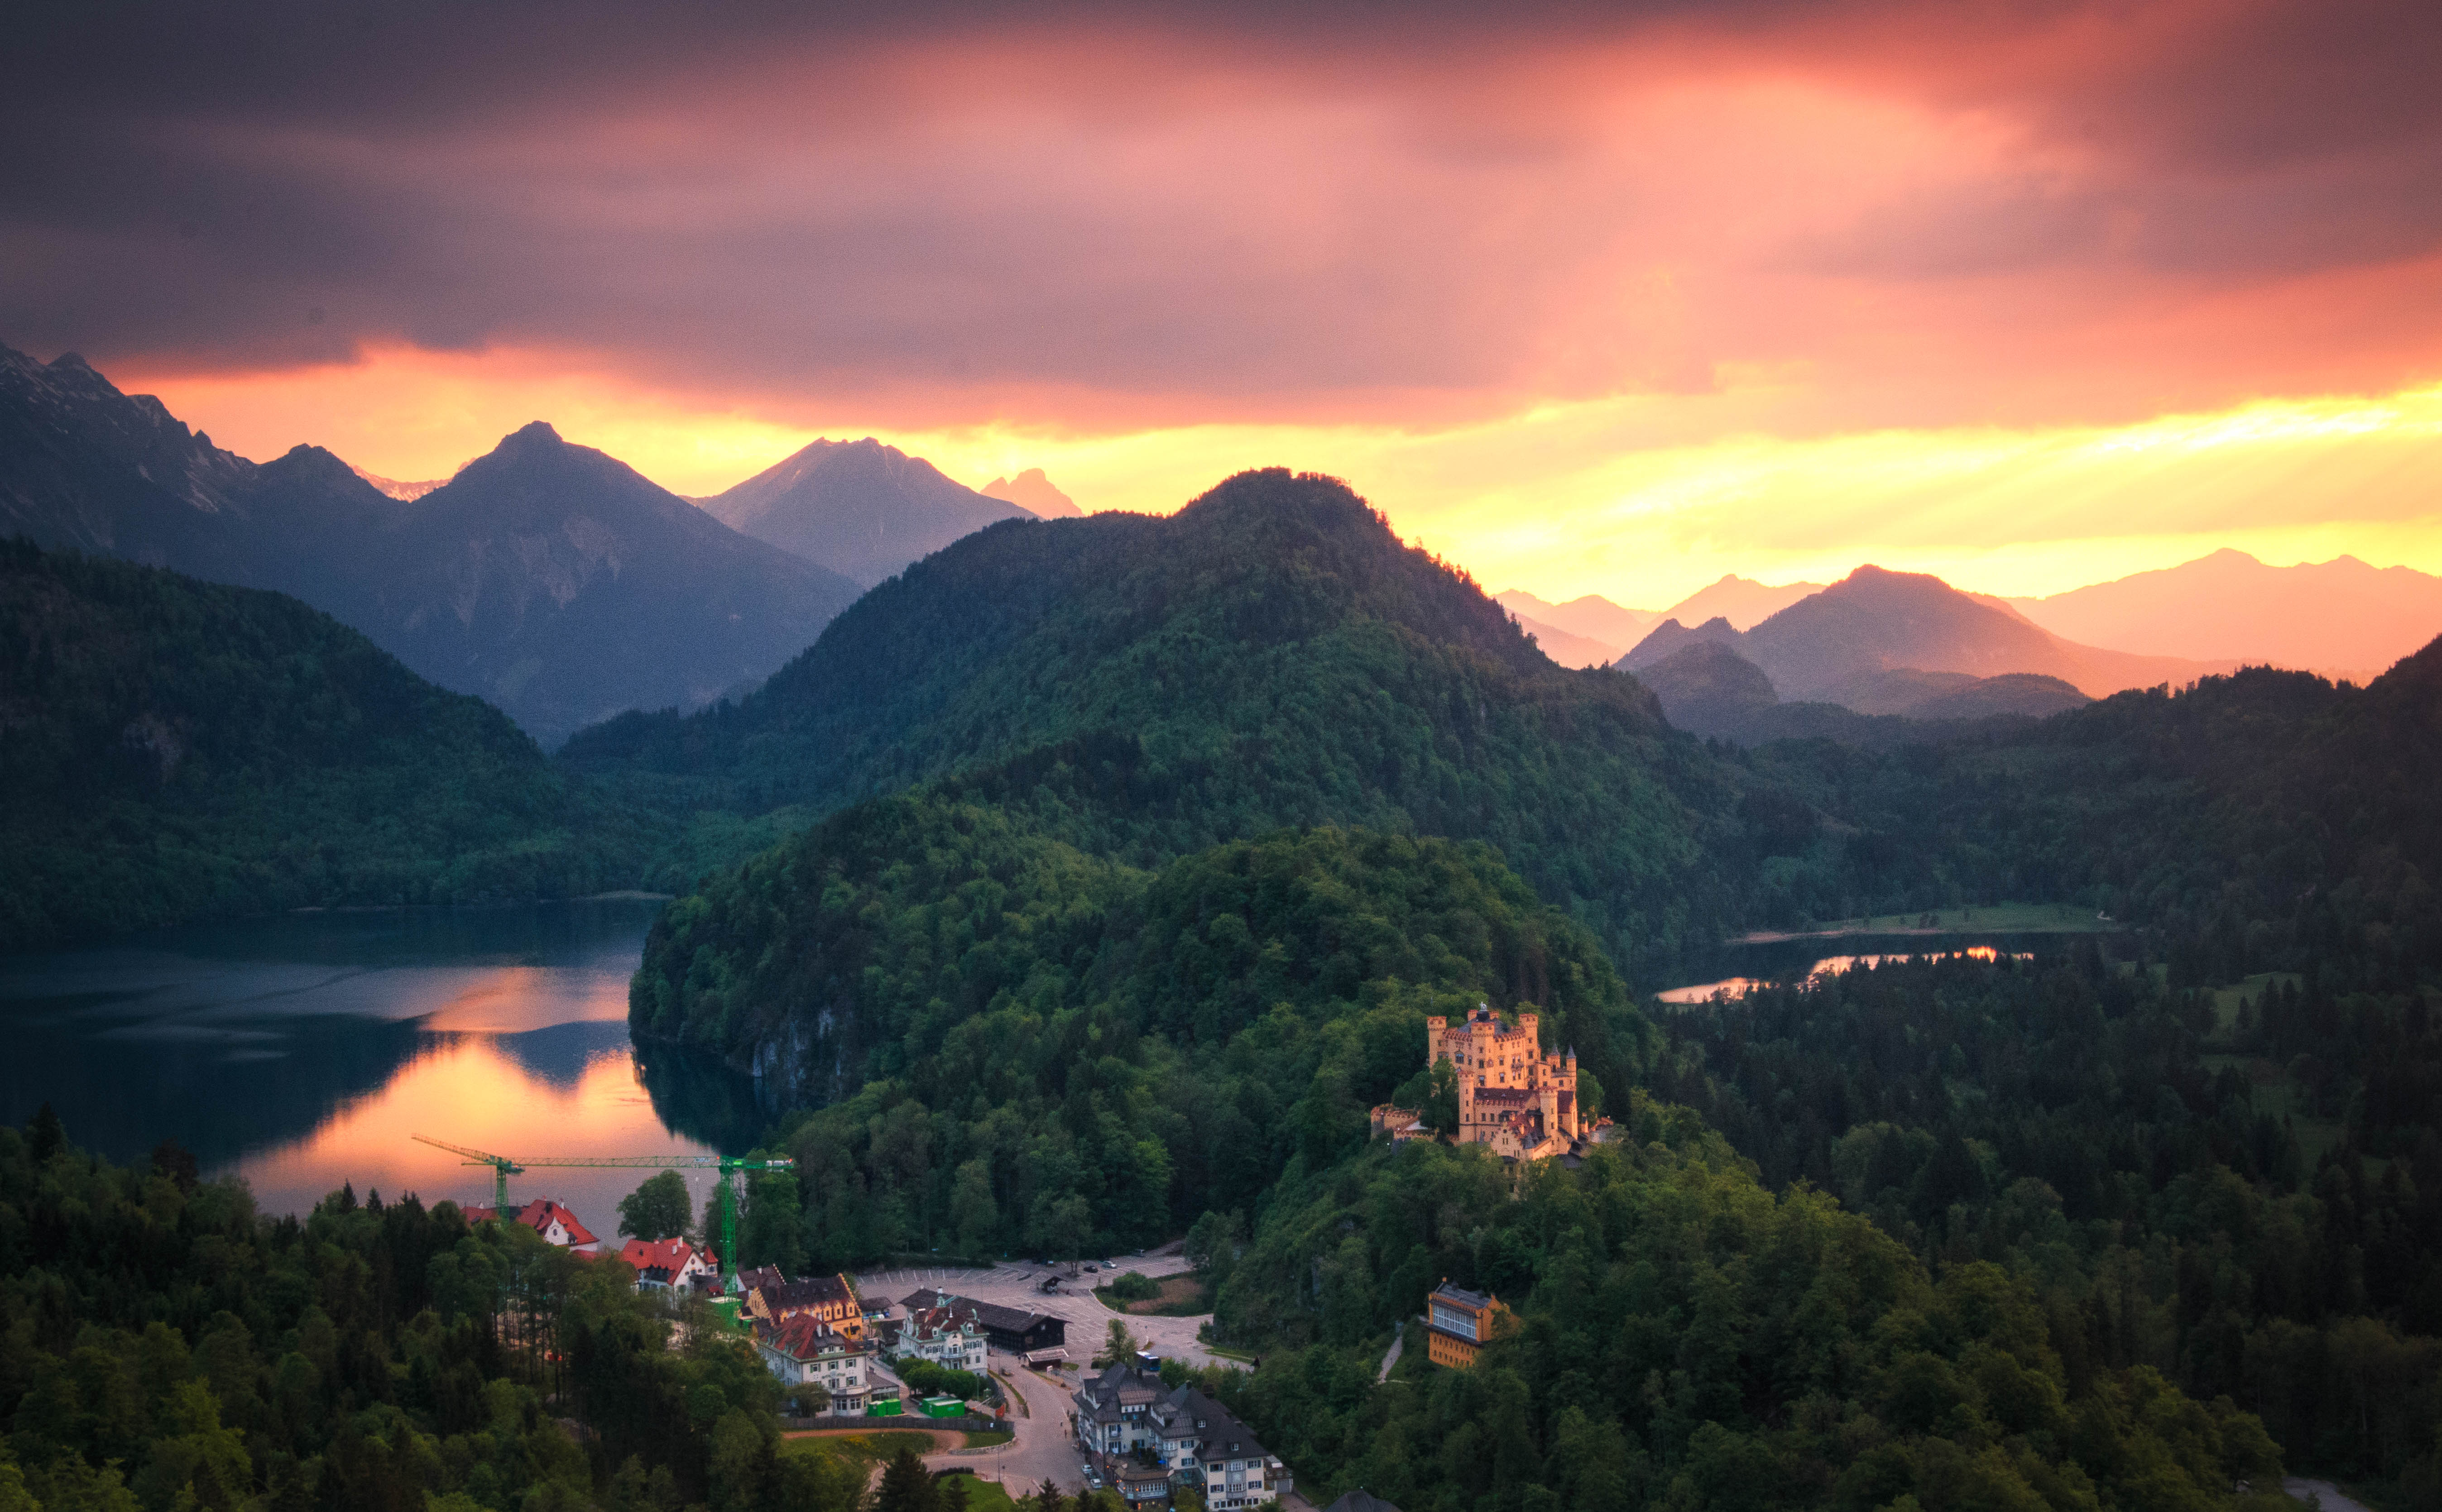 Sunset over the castle on the hill in Germany